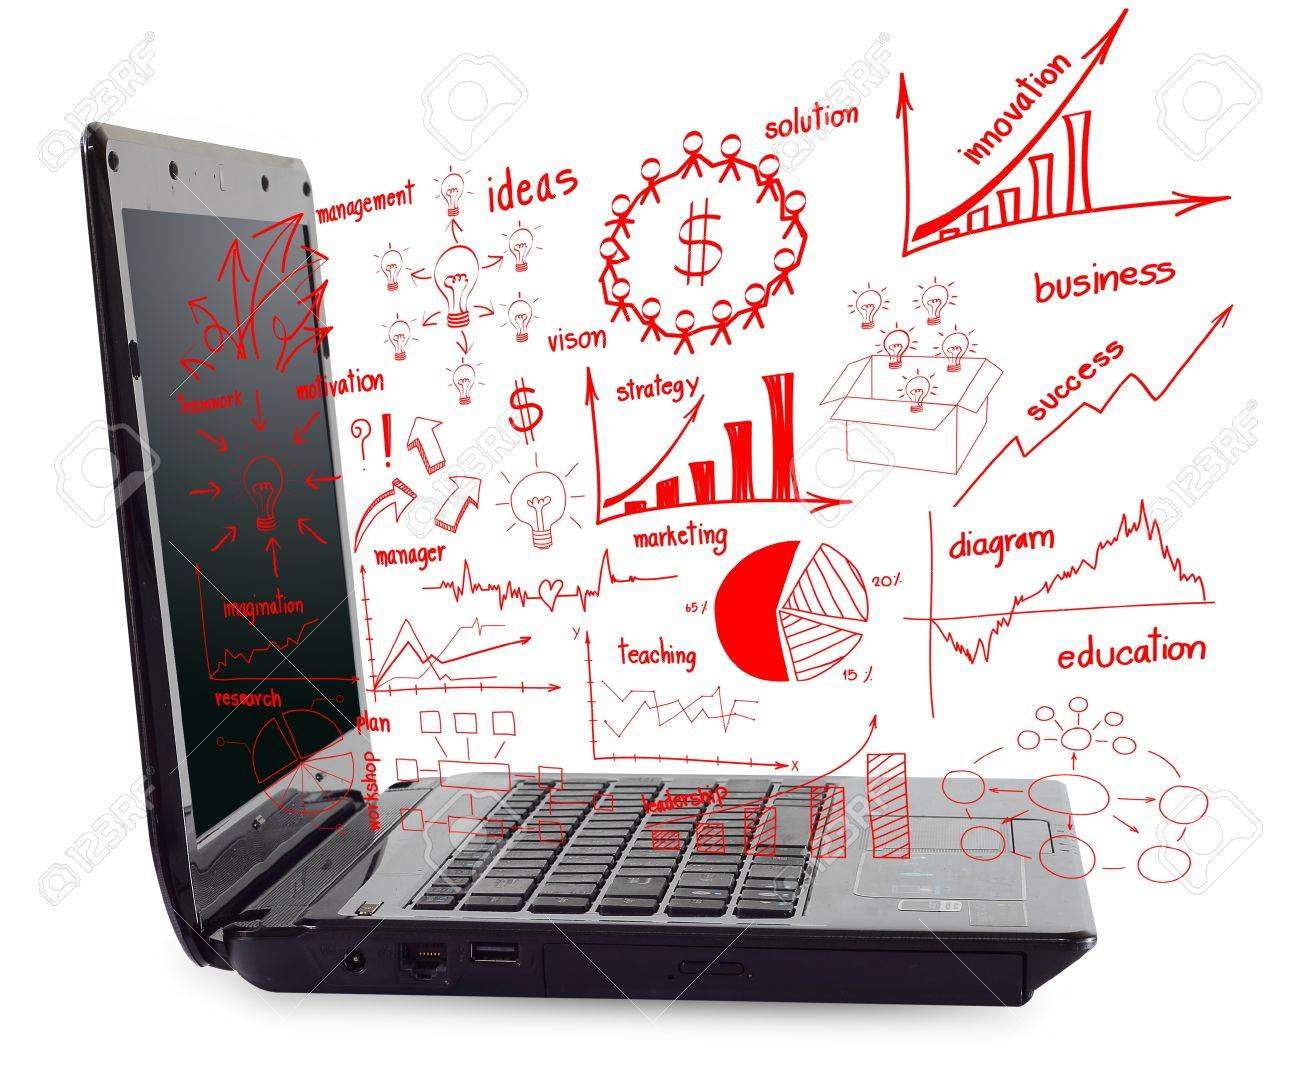 hight resolution of laptop computer pc with drawing business plan concept diagrams stock photo 15856506